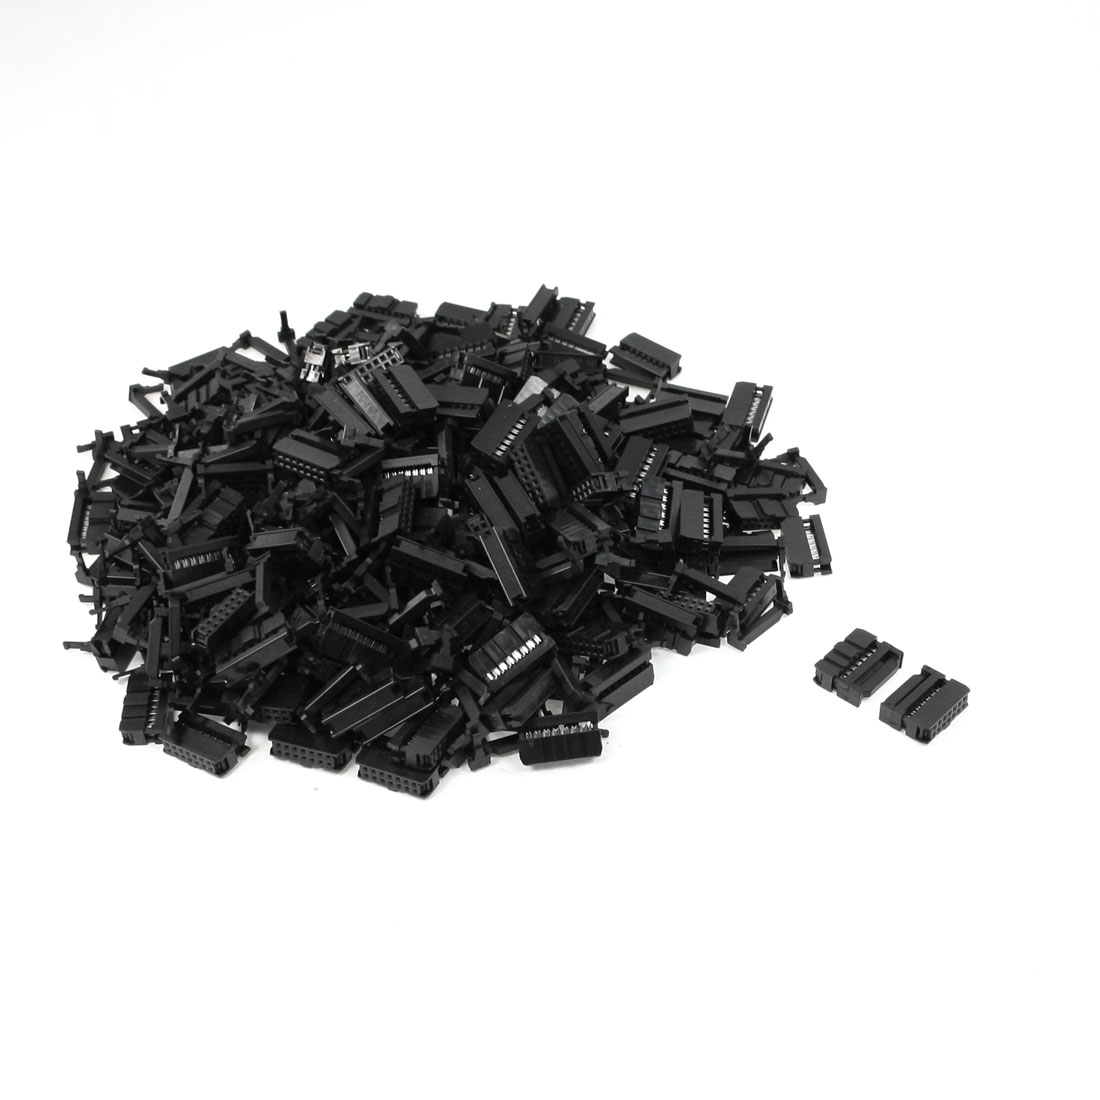 200 Pcs FC-14P 14 Pin Male IDC Socket Plug Ribbon Cable Connector Black